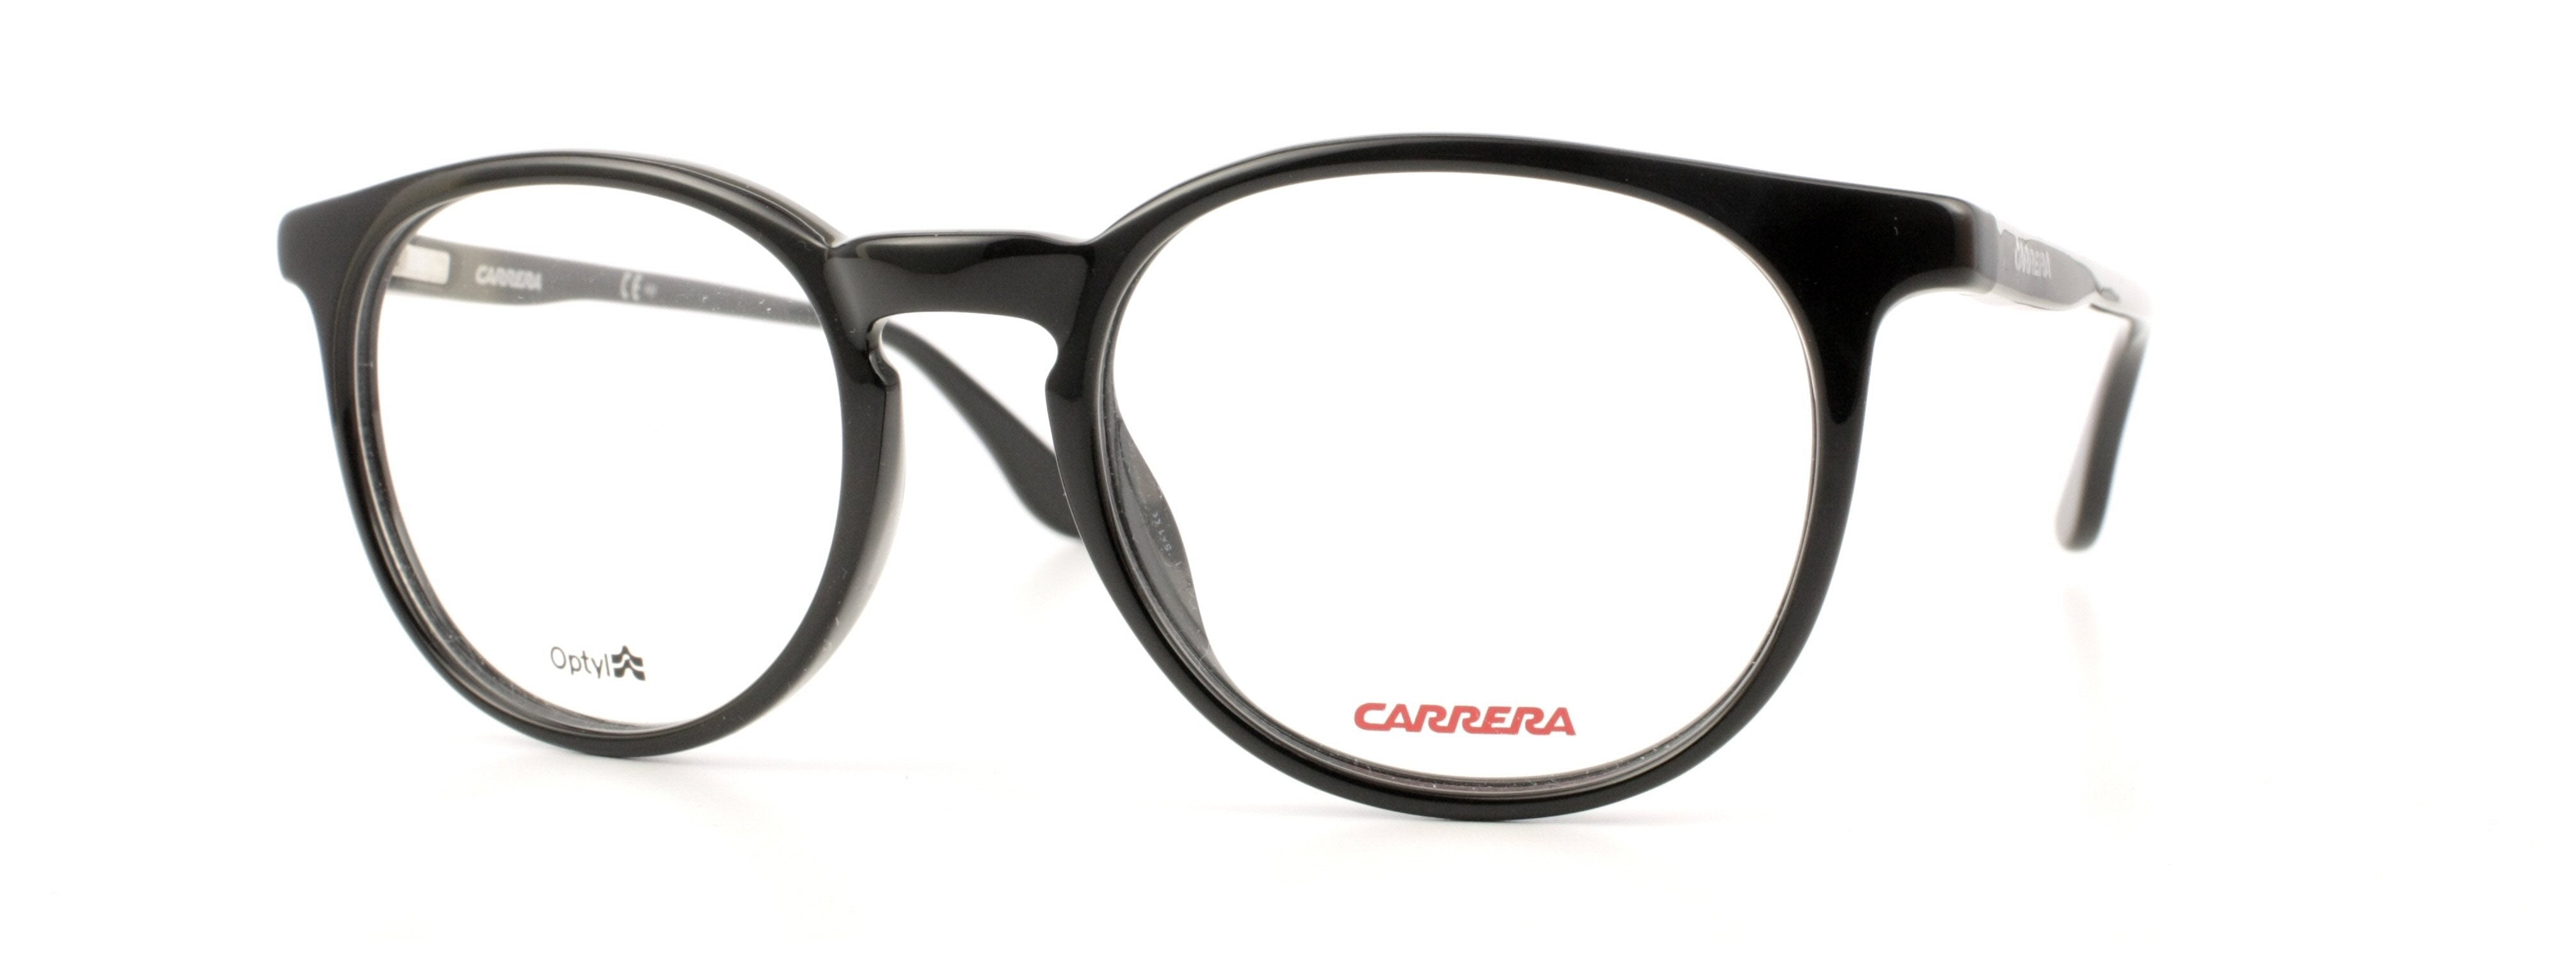 f20a699b168 Carrera CA 6636 D28 – Mad About Specs - Glasses Online